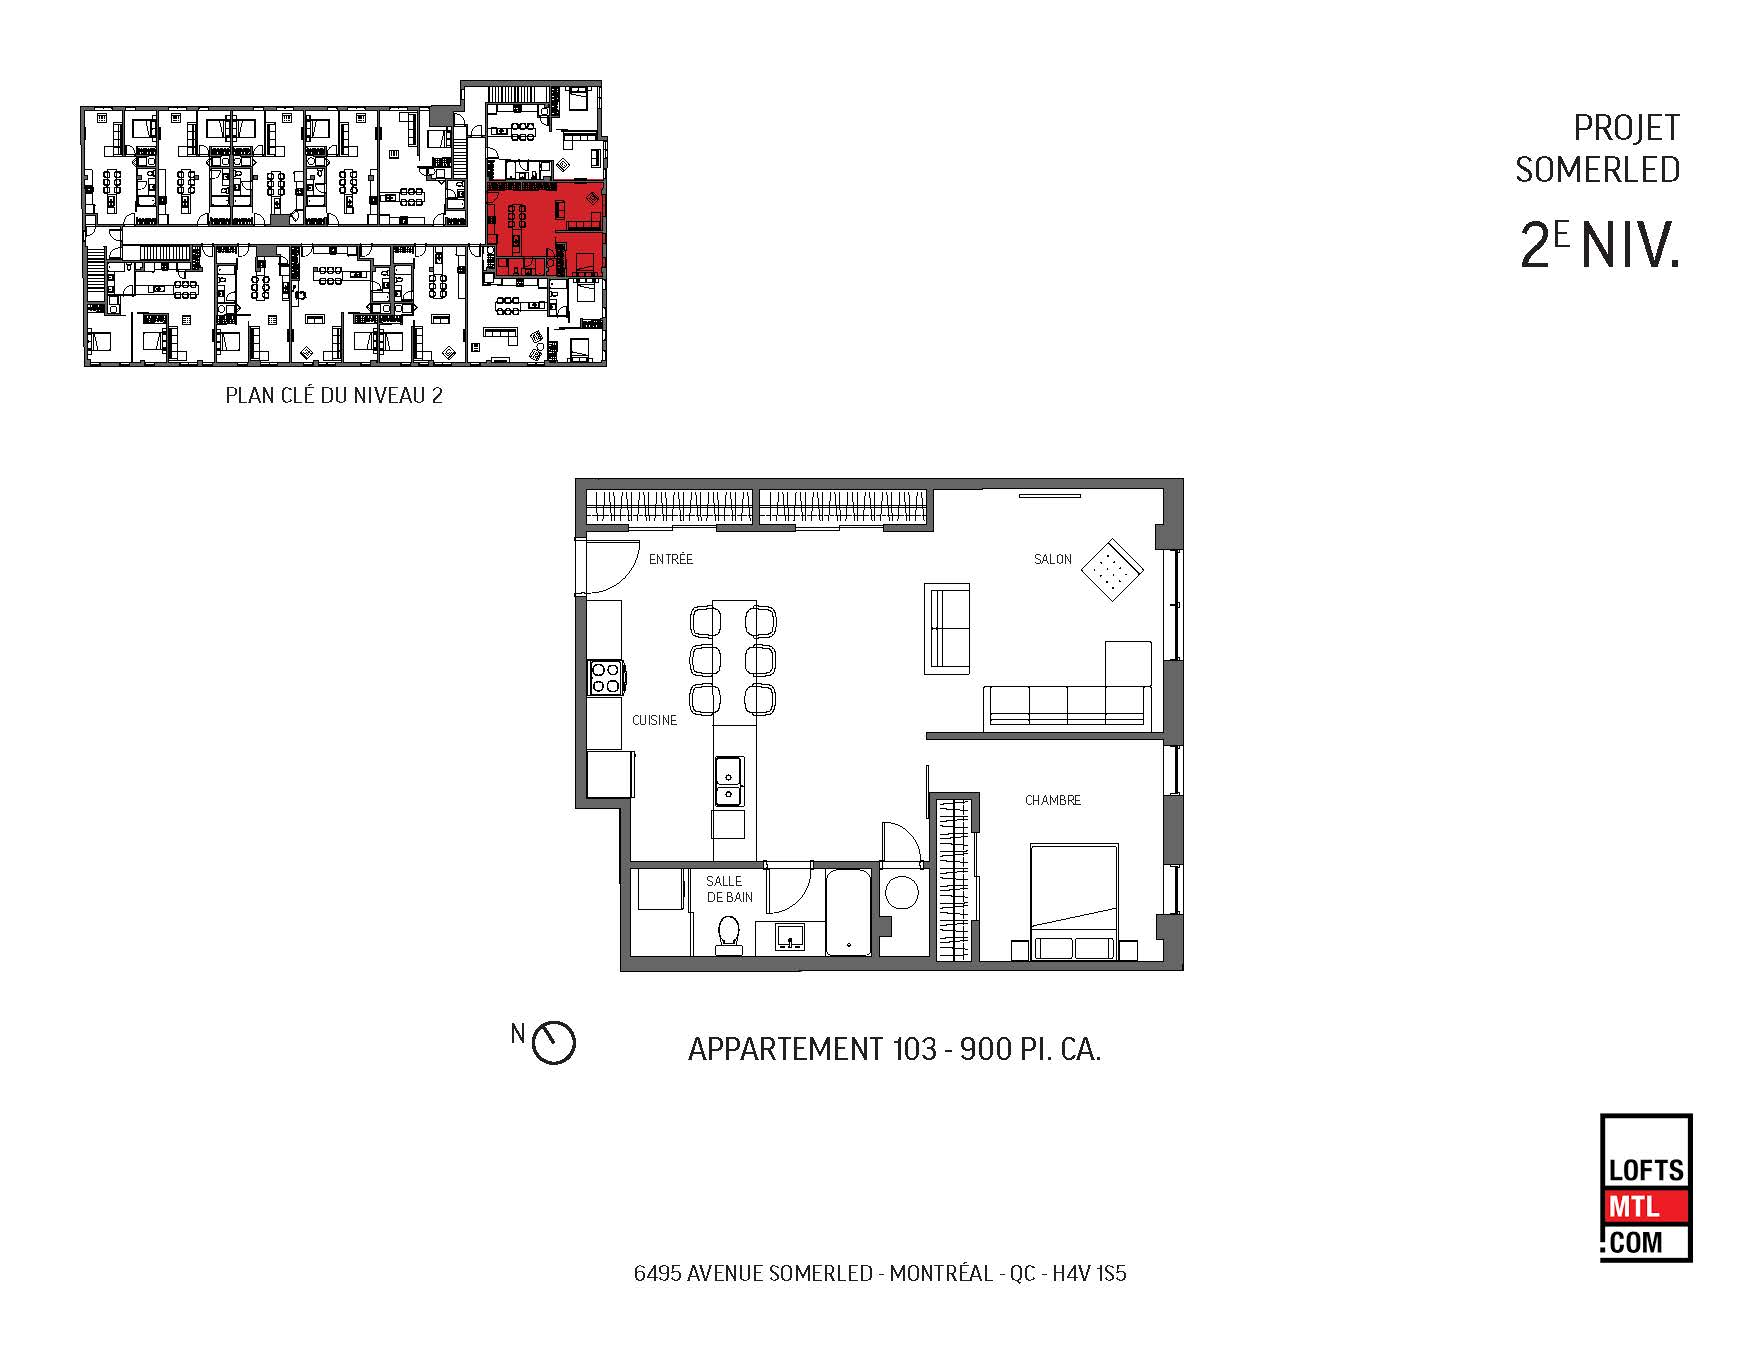 Plans appartements vectoriel Somerled_Page_03.jpg